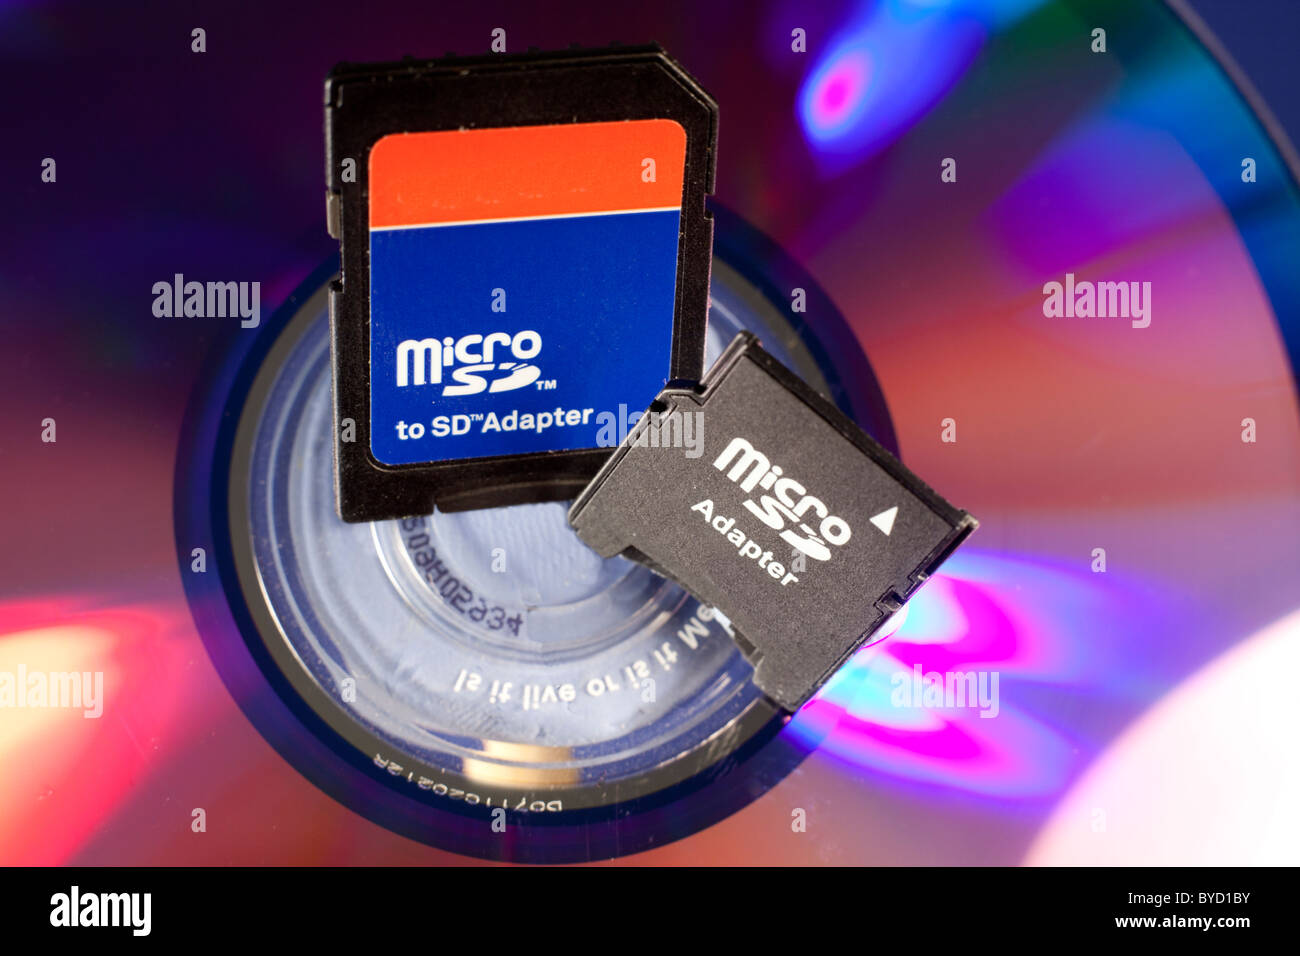 Micro Sd Adapter Stock Photos Images Alamy Adaptor Memory Adapters On A Dvd Background Image